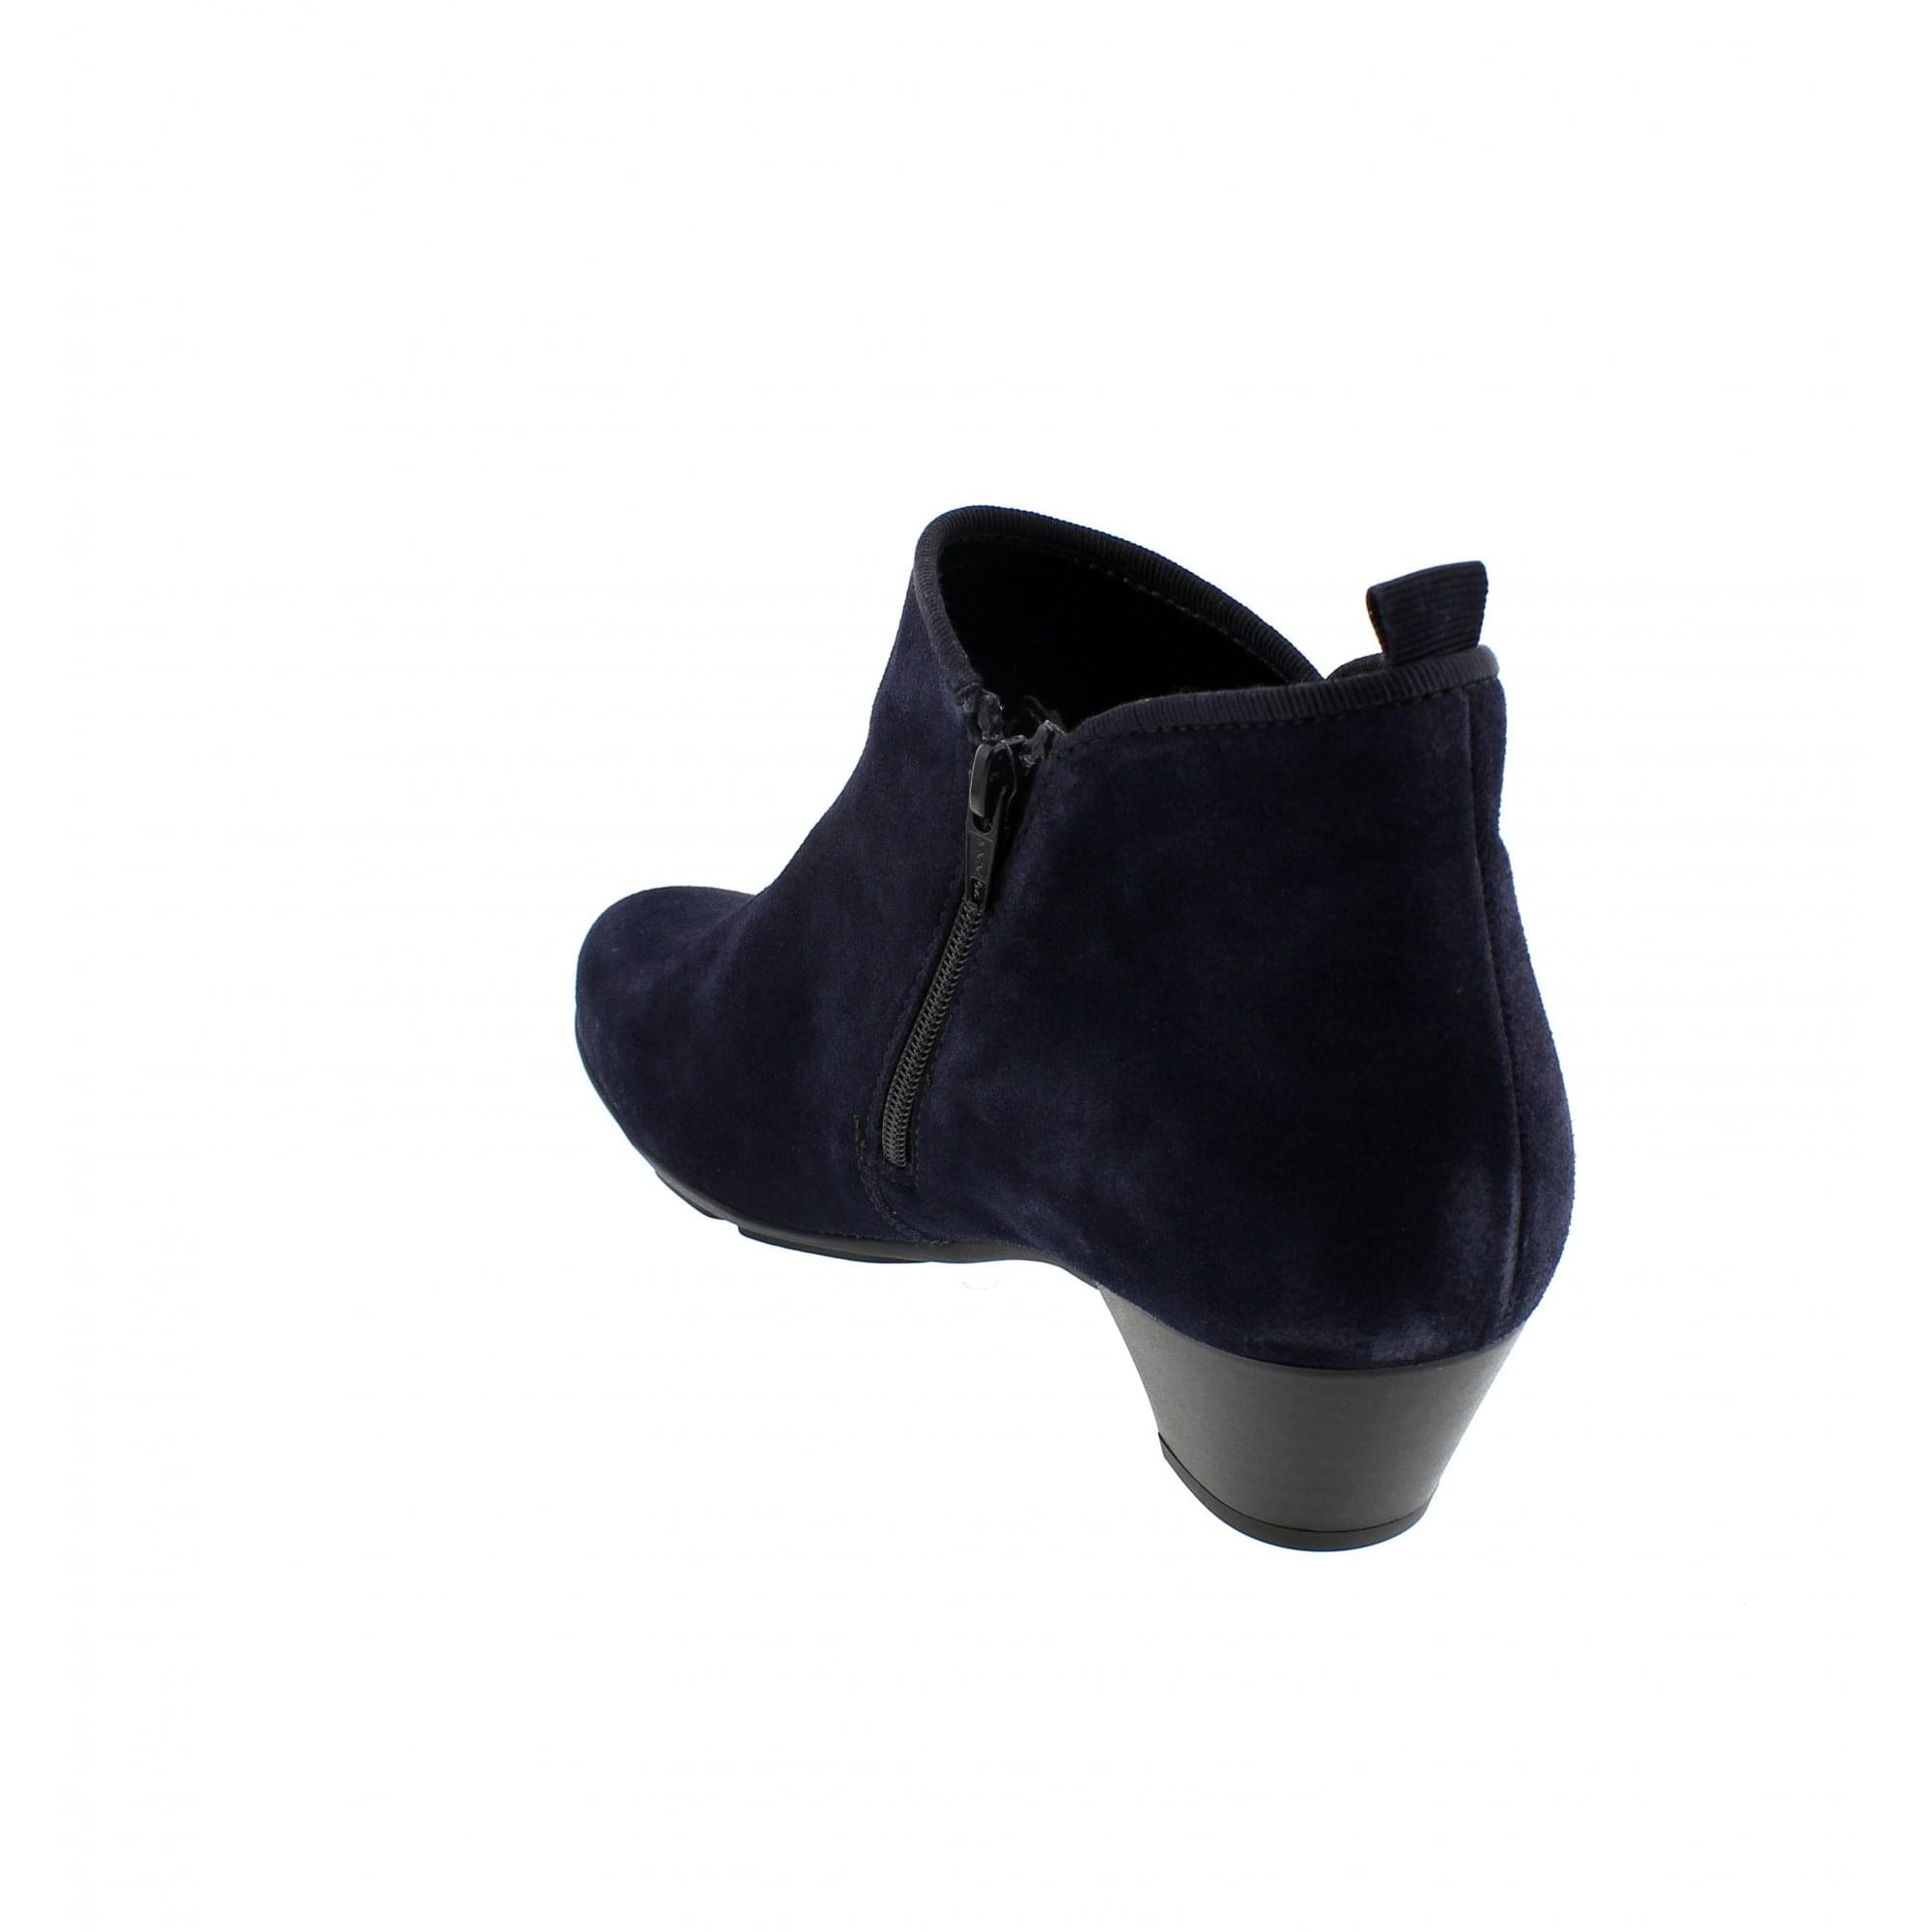 c54db6b4afe1 Gabor Trudy 95-633-16 Navy Suede Womens Ankle Boots